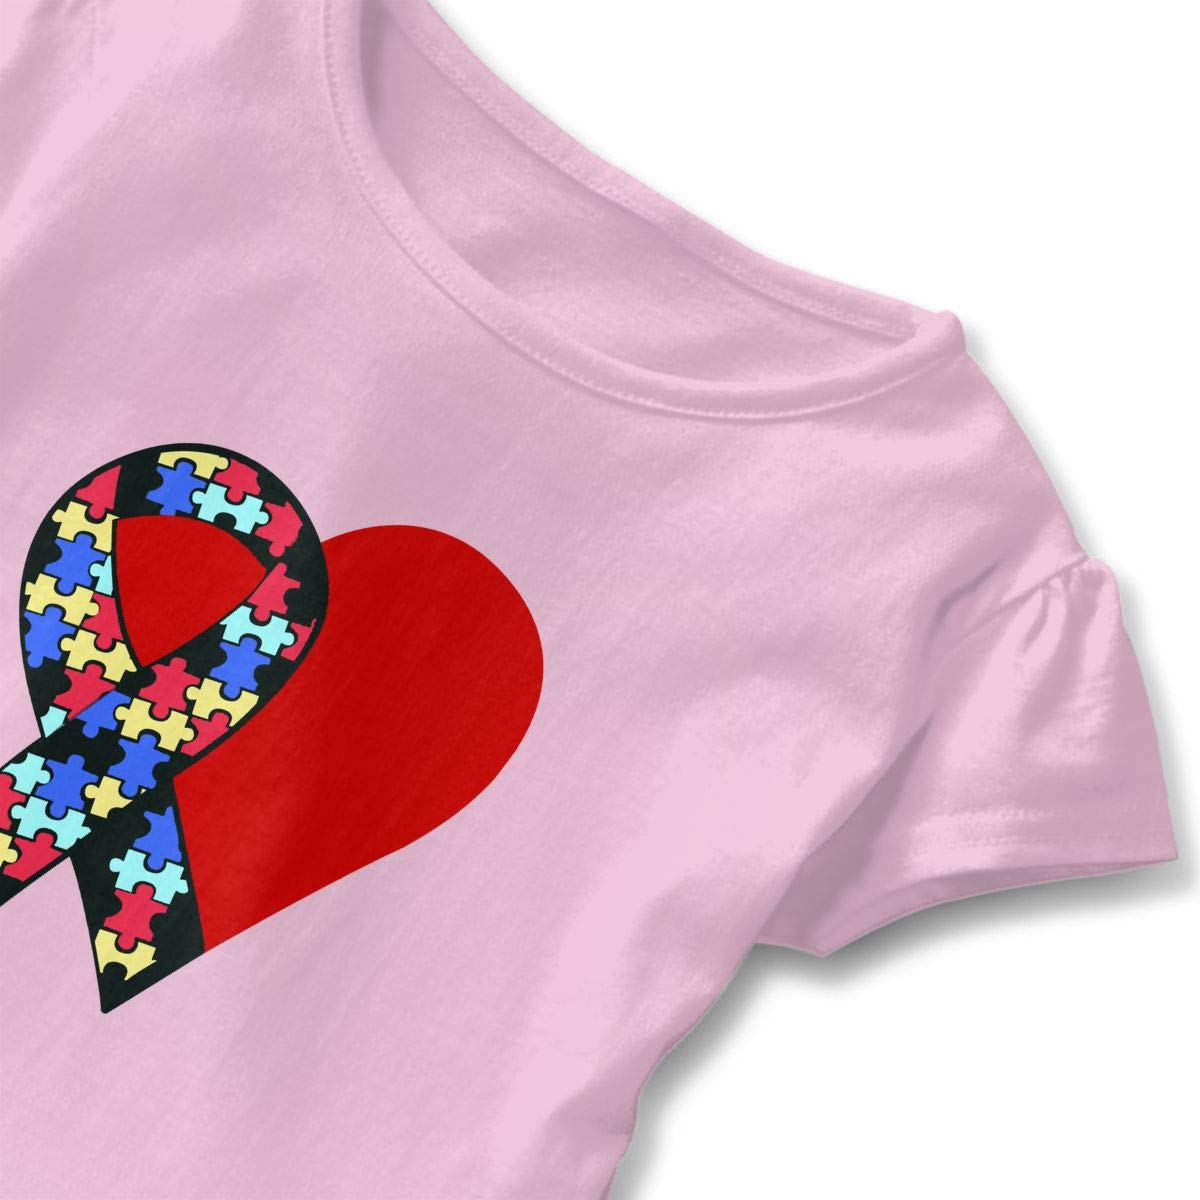 ZP-CCYF Ribbon Heart Autism Awareness Badge Toddler Baby Girl Ruffle Short Sleeve T-Shirt Comfortable Cotton T Shirts